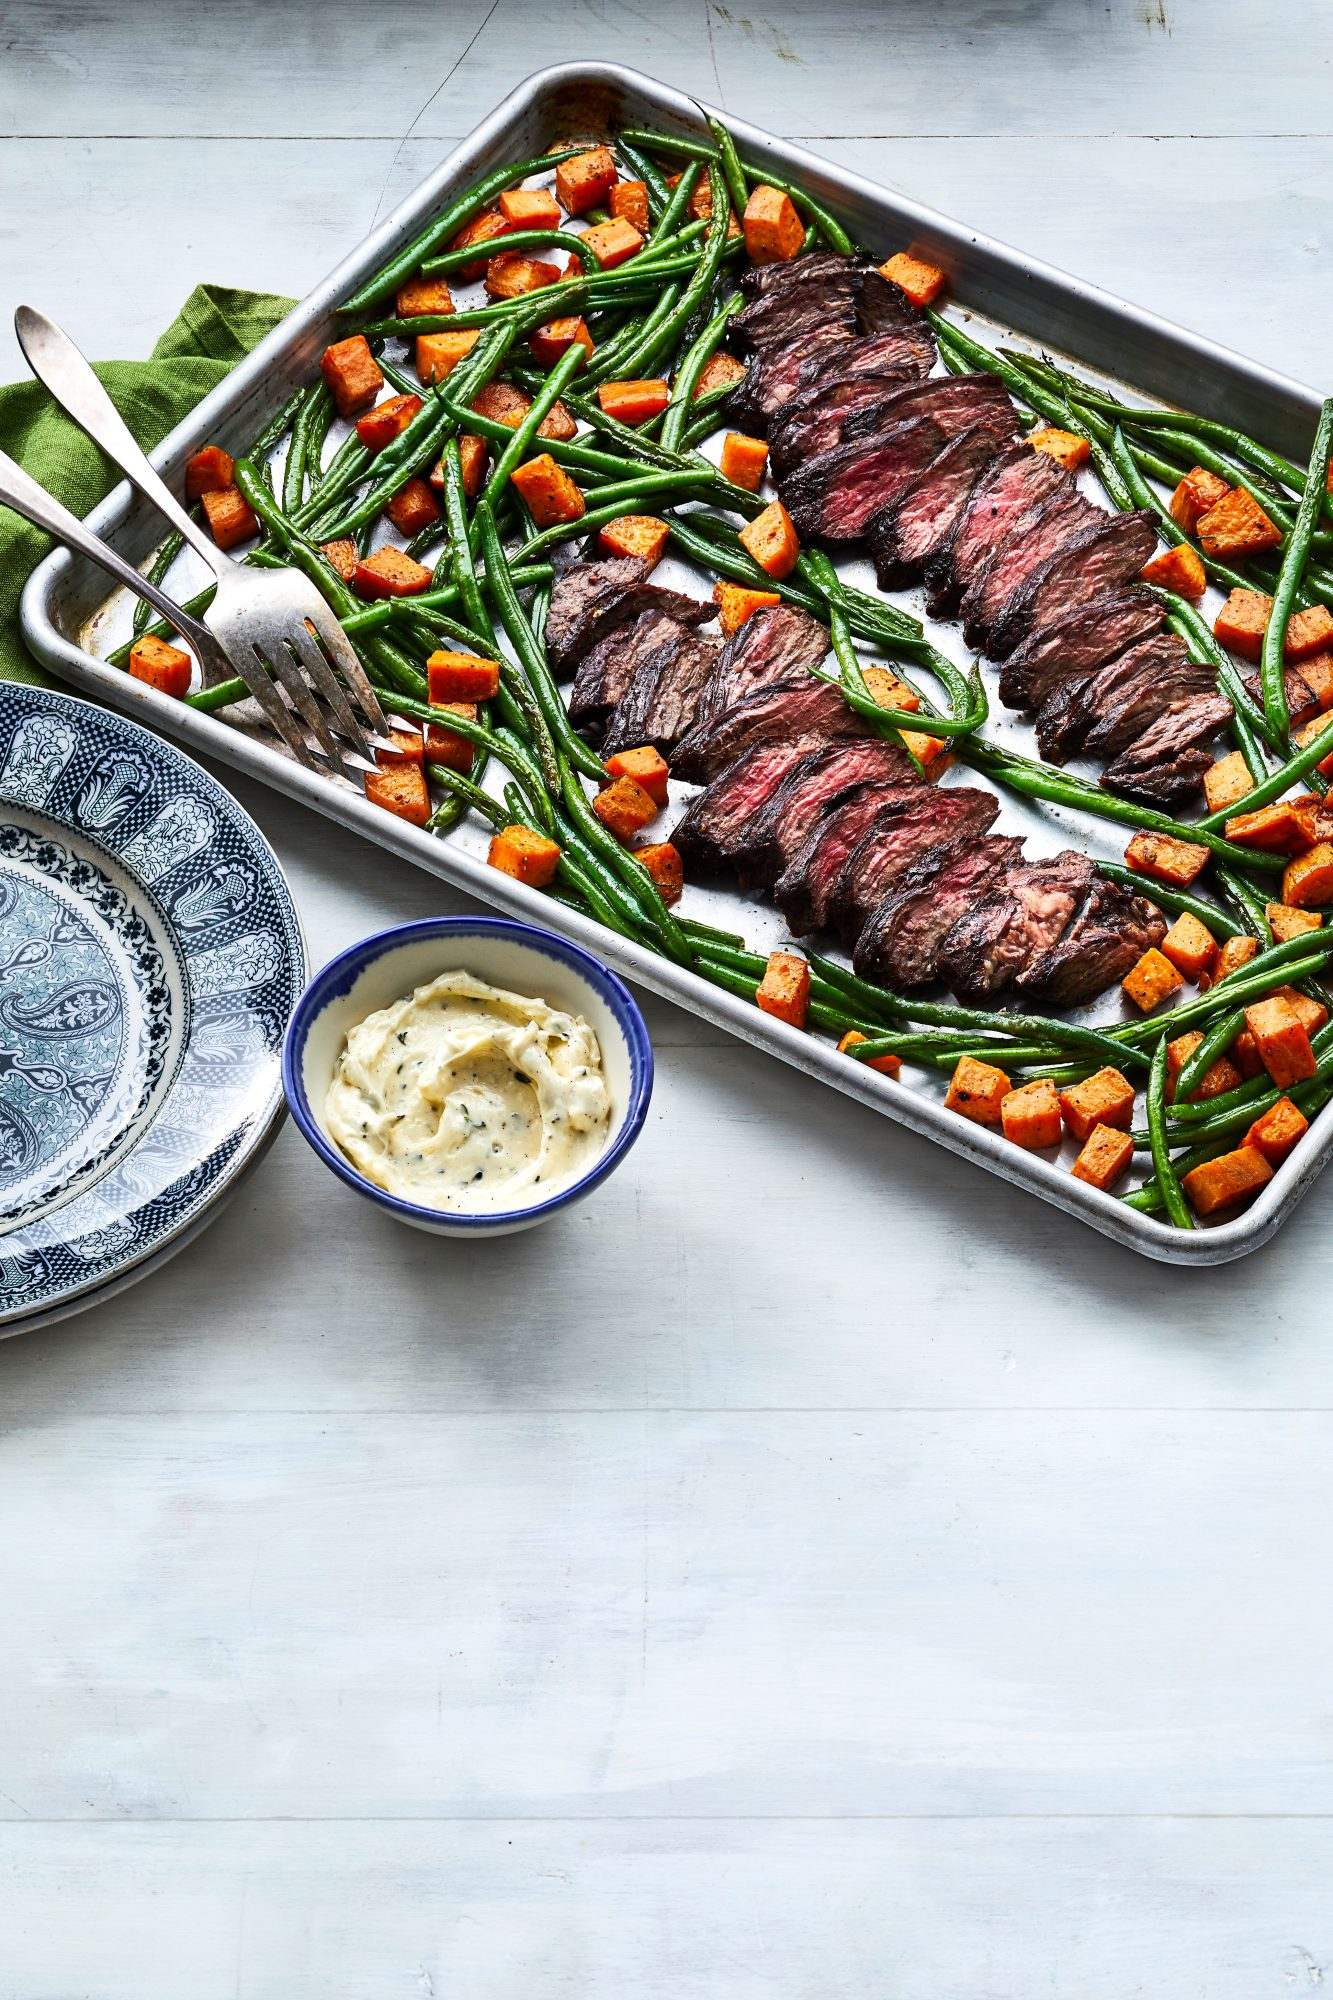 Sheet Pan Hanger Steak and Vegetables